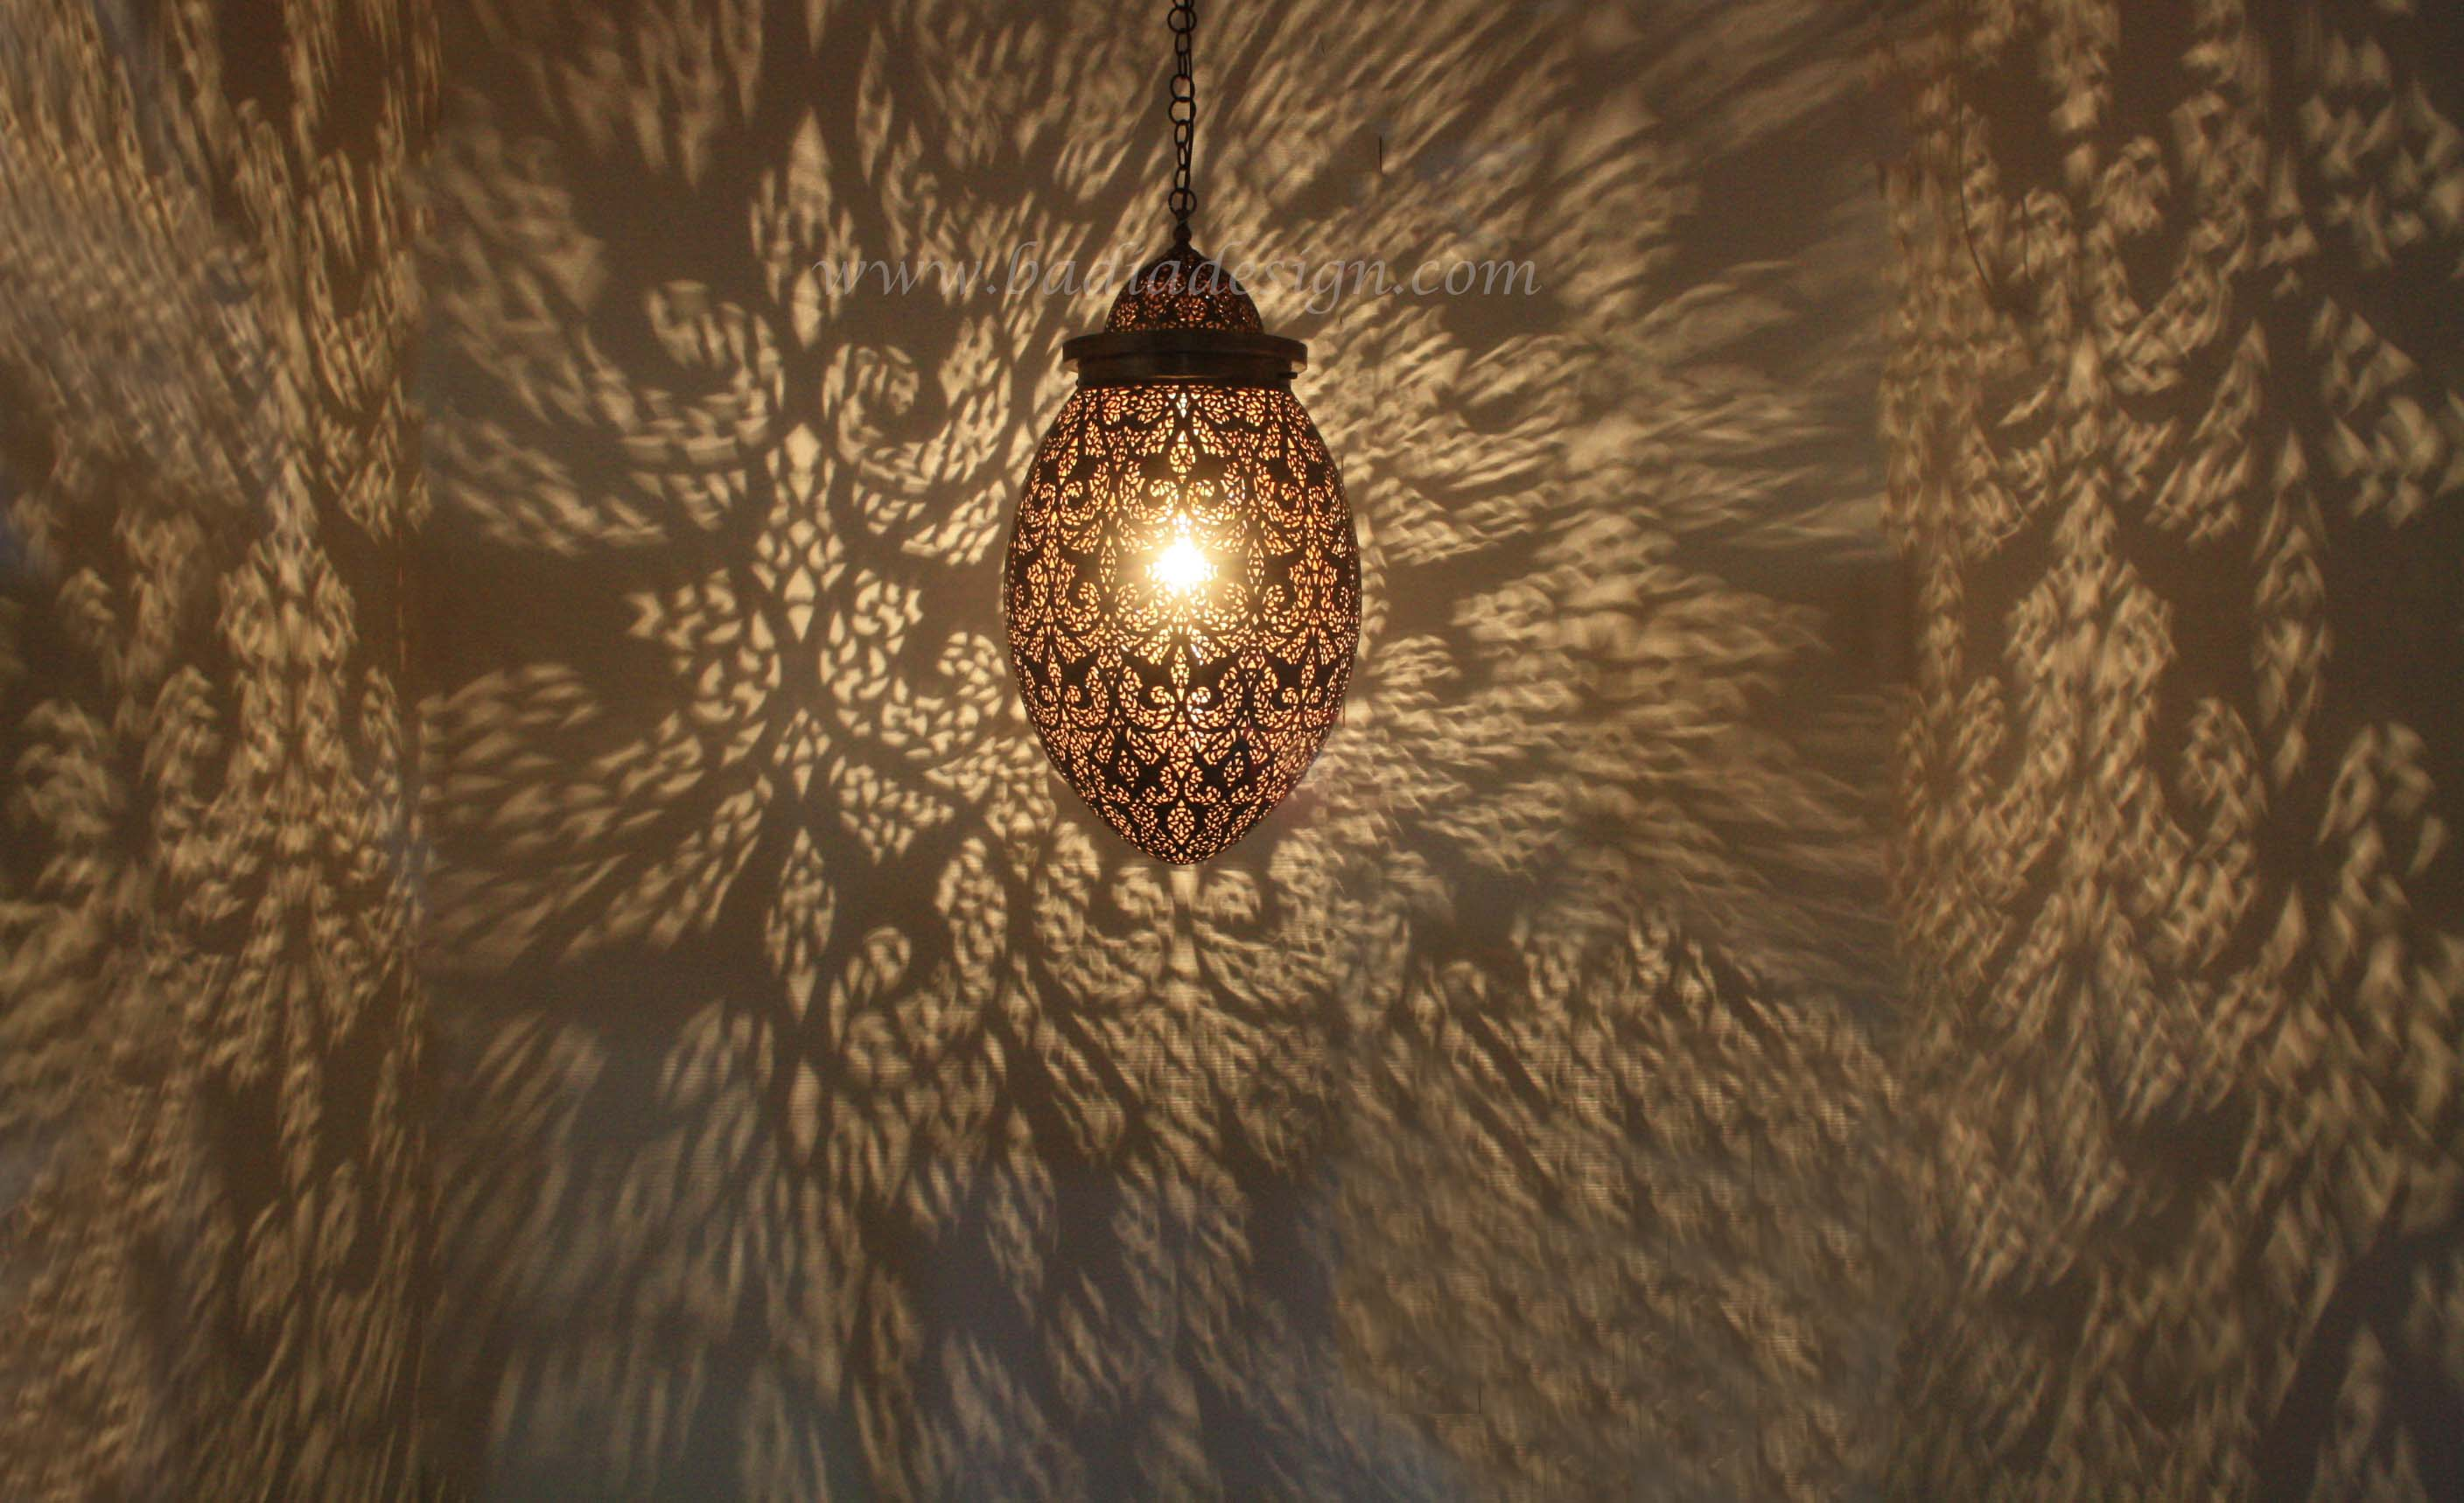 moroccan-tear-drop-shaped-light-fixture-lig273-1.jpg